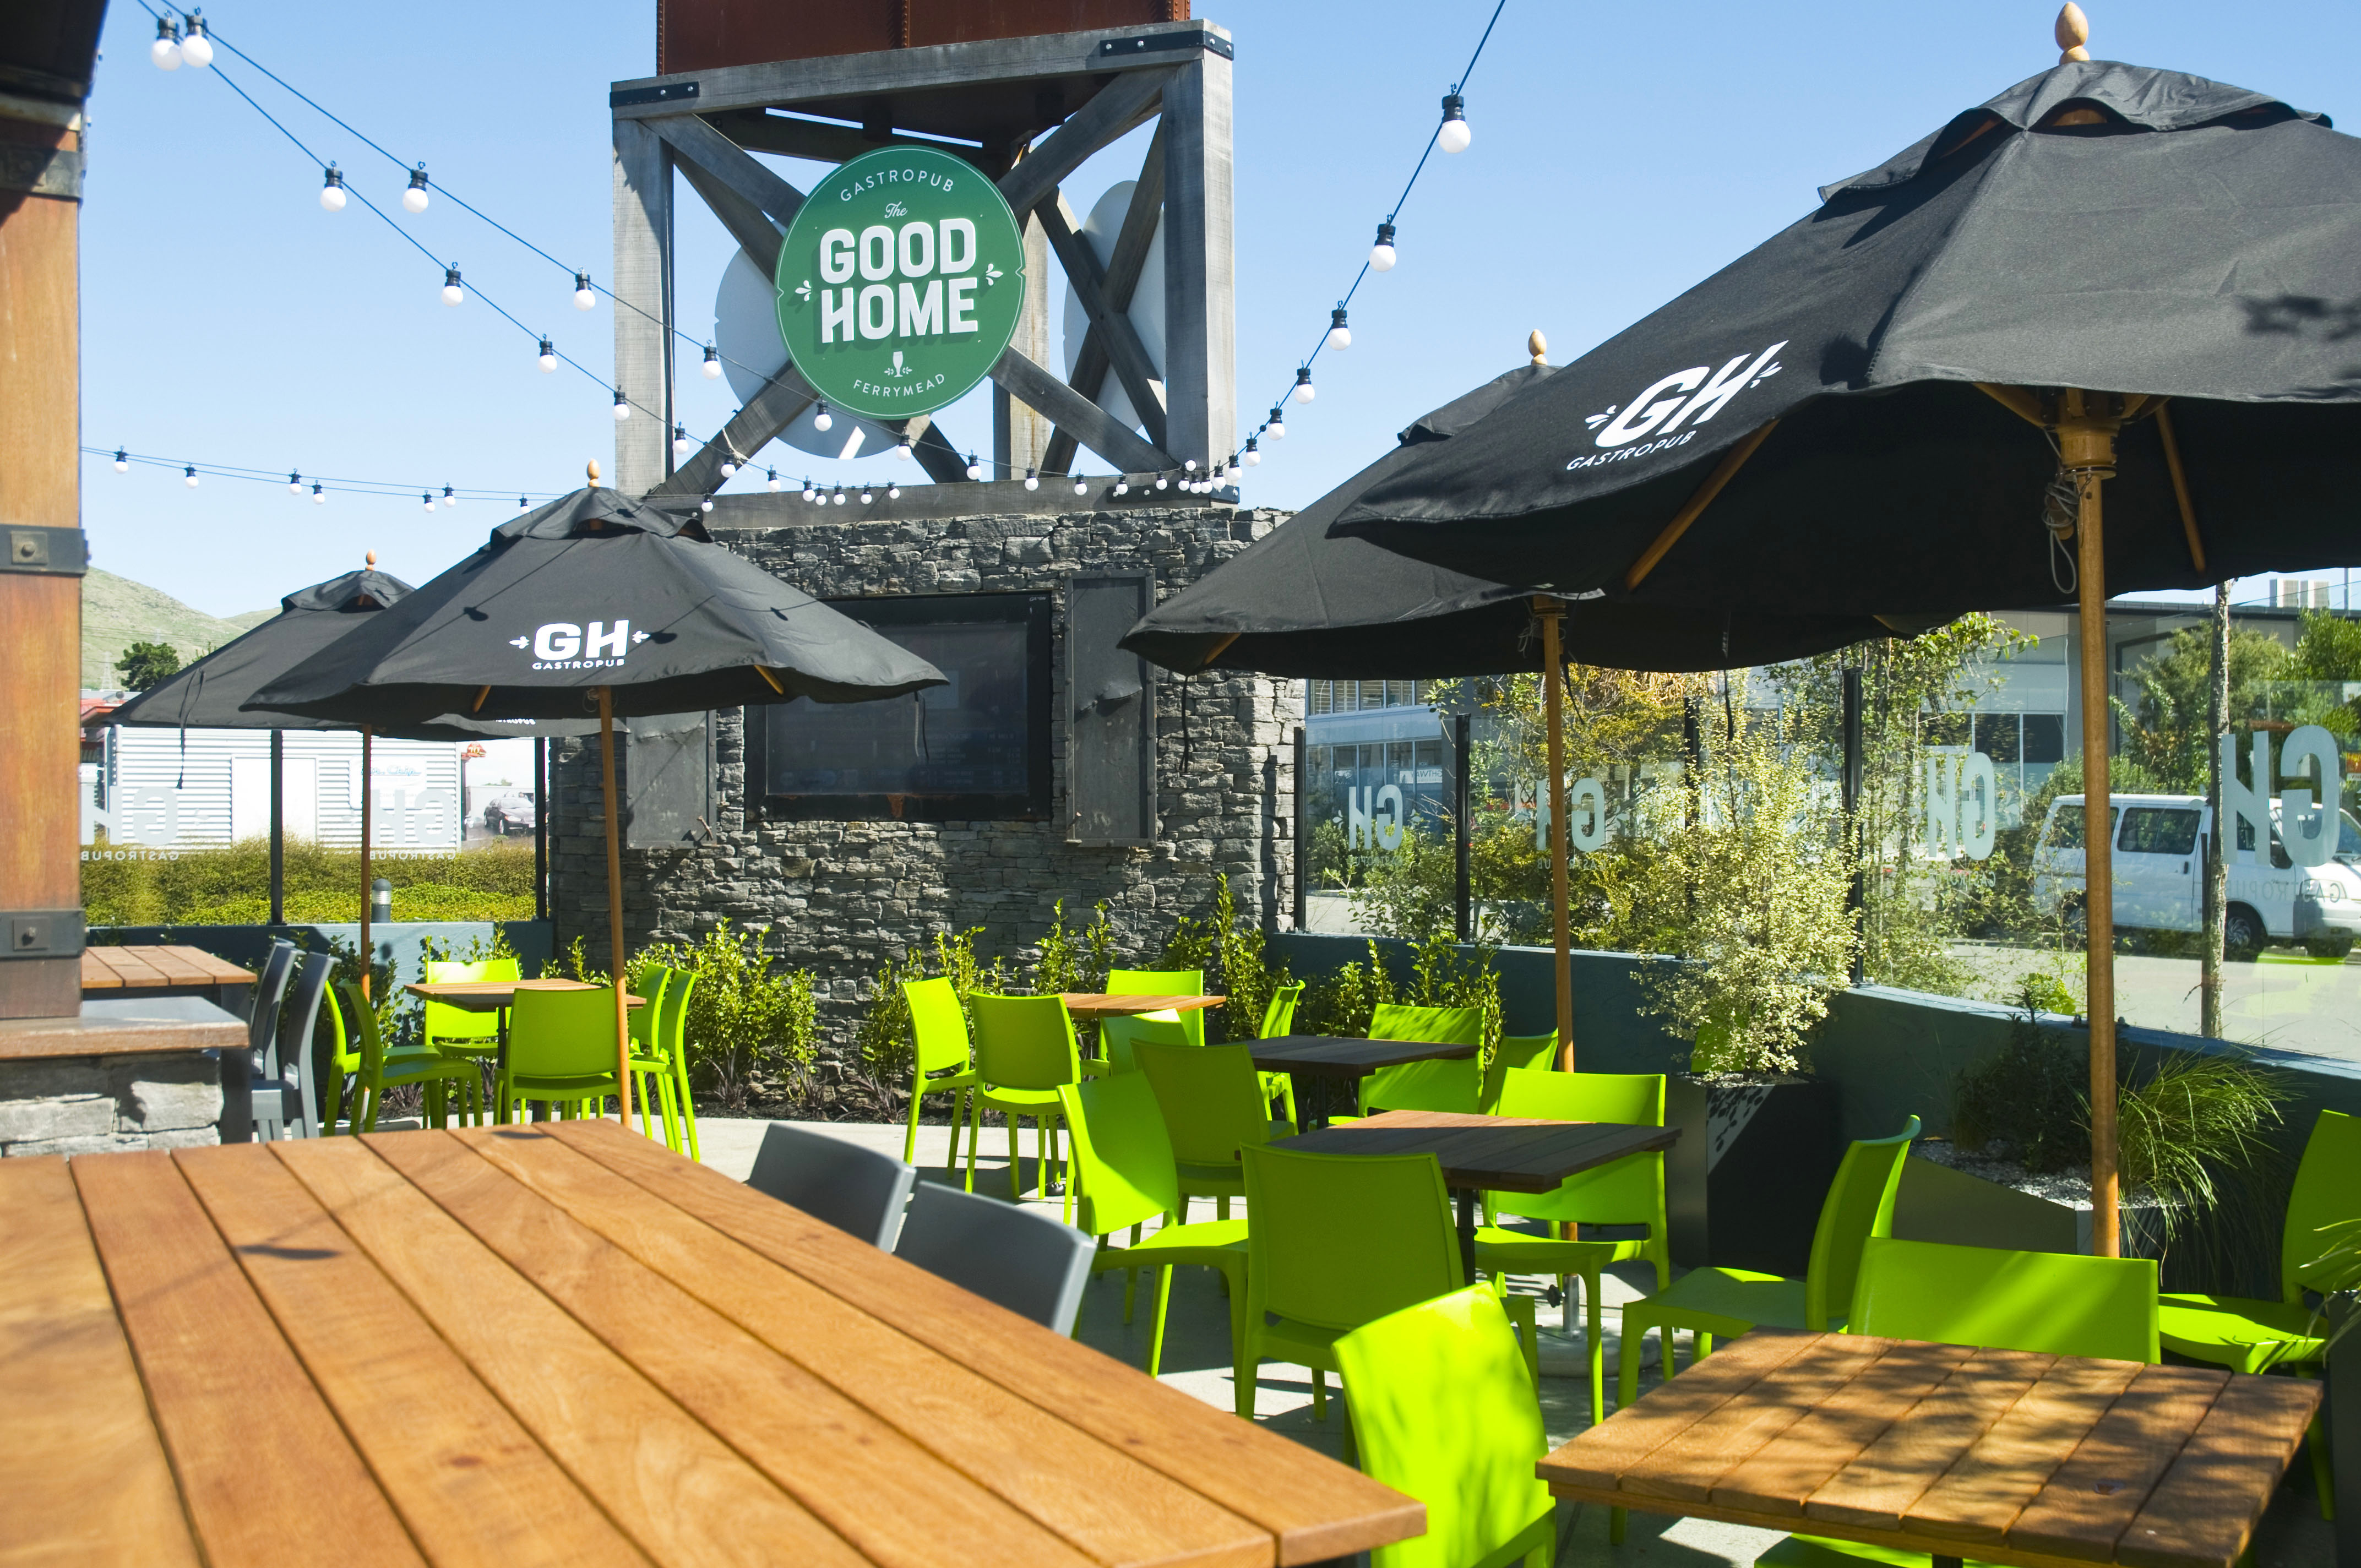 Find a GOODHOME Gastropub - The Good Home